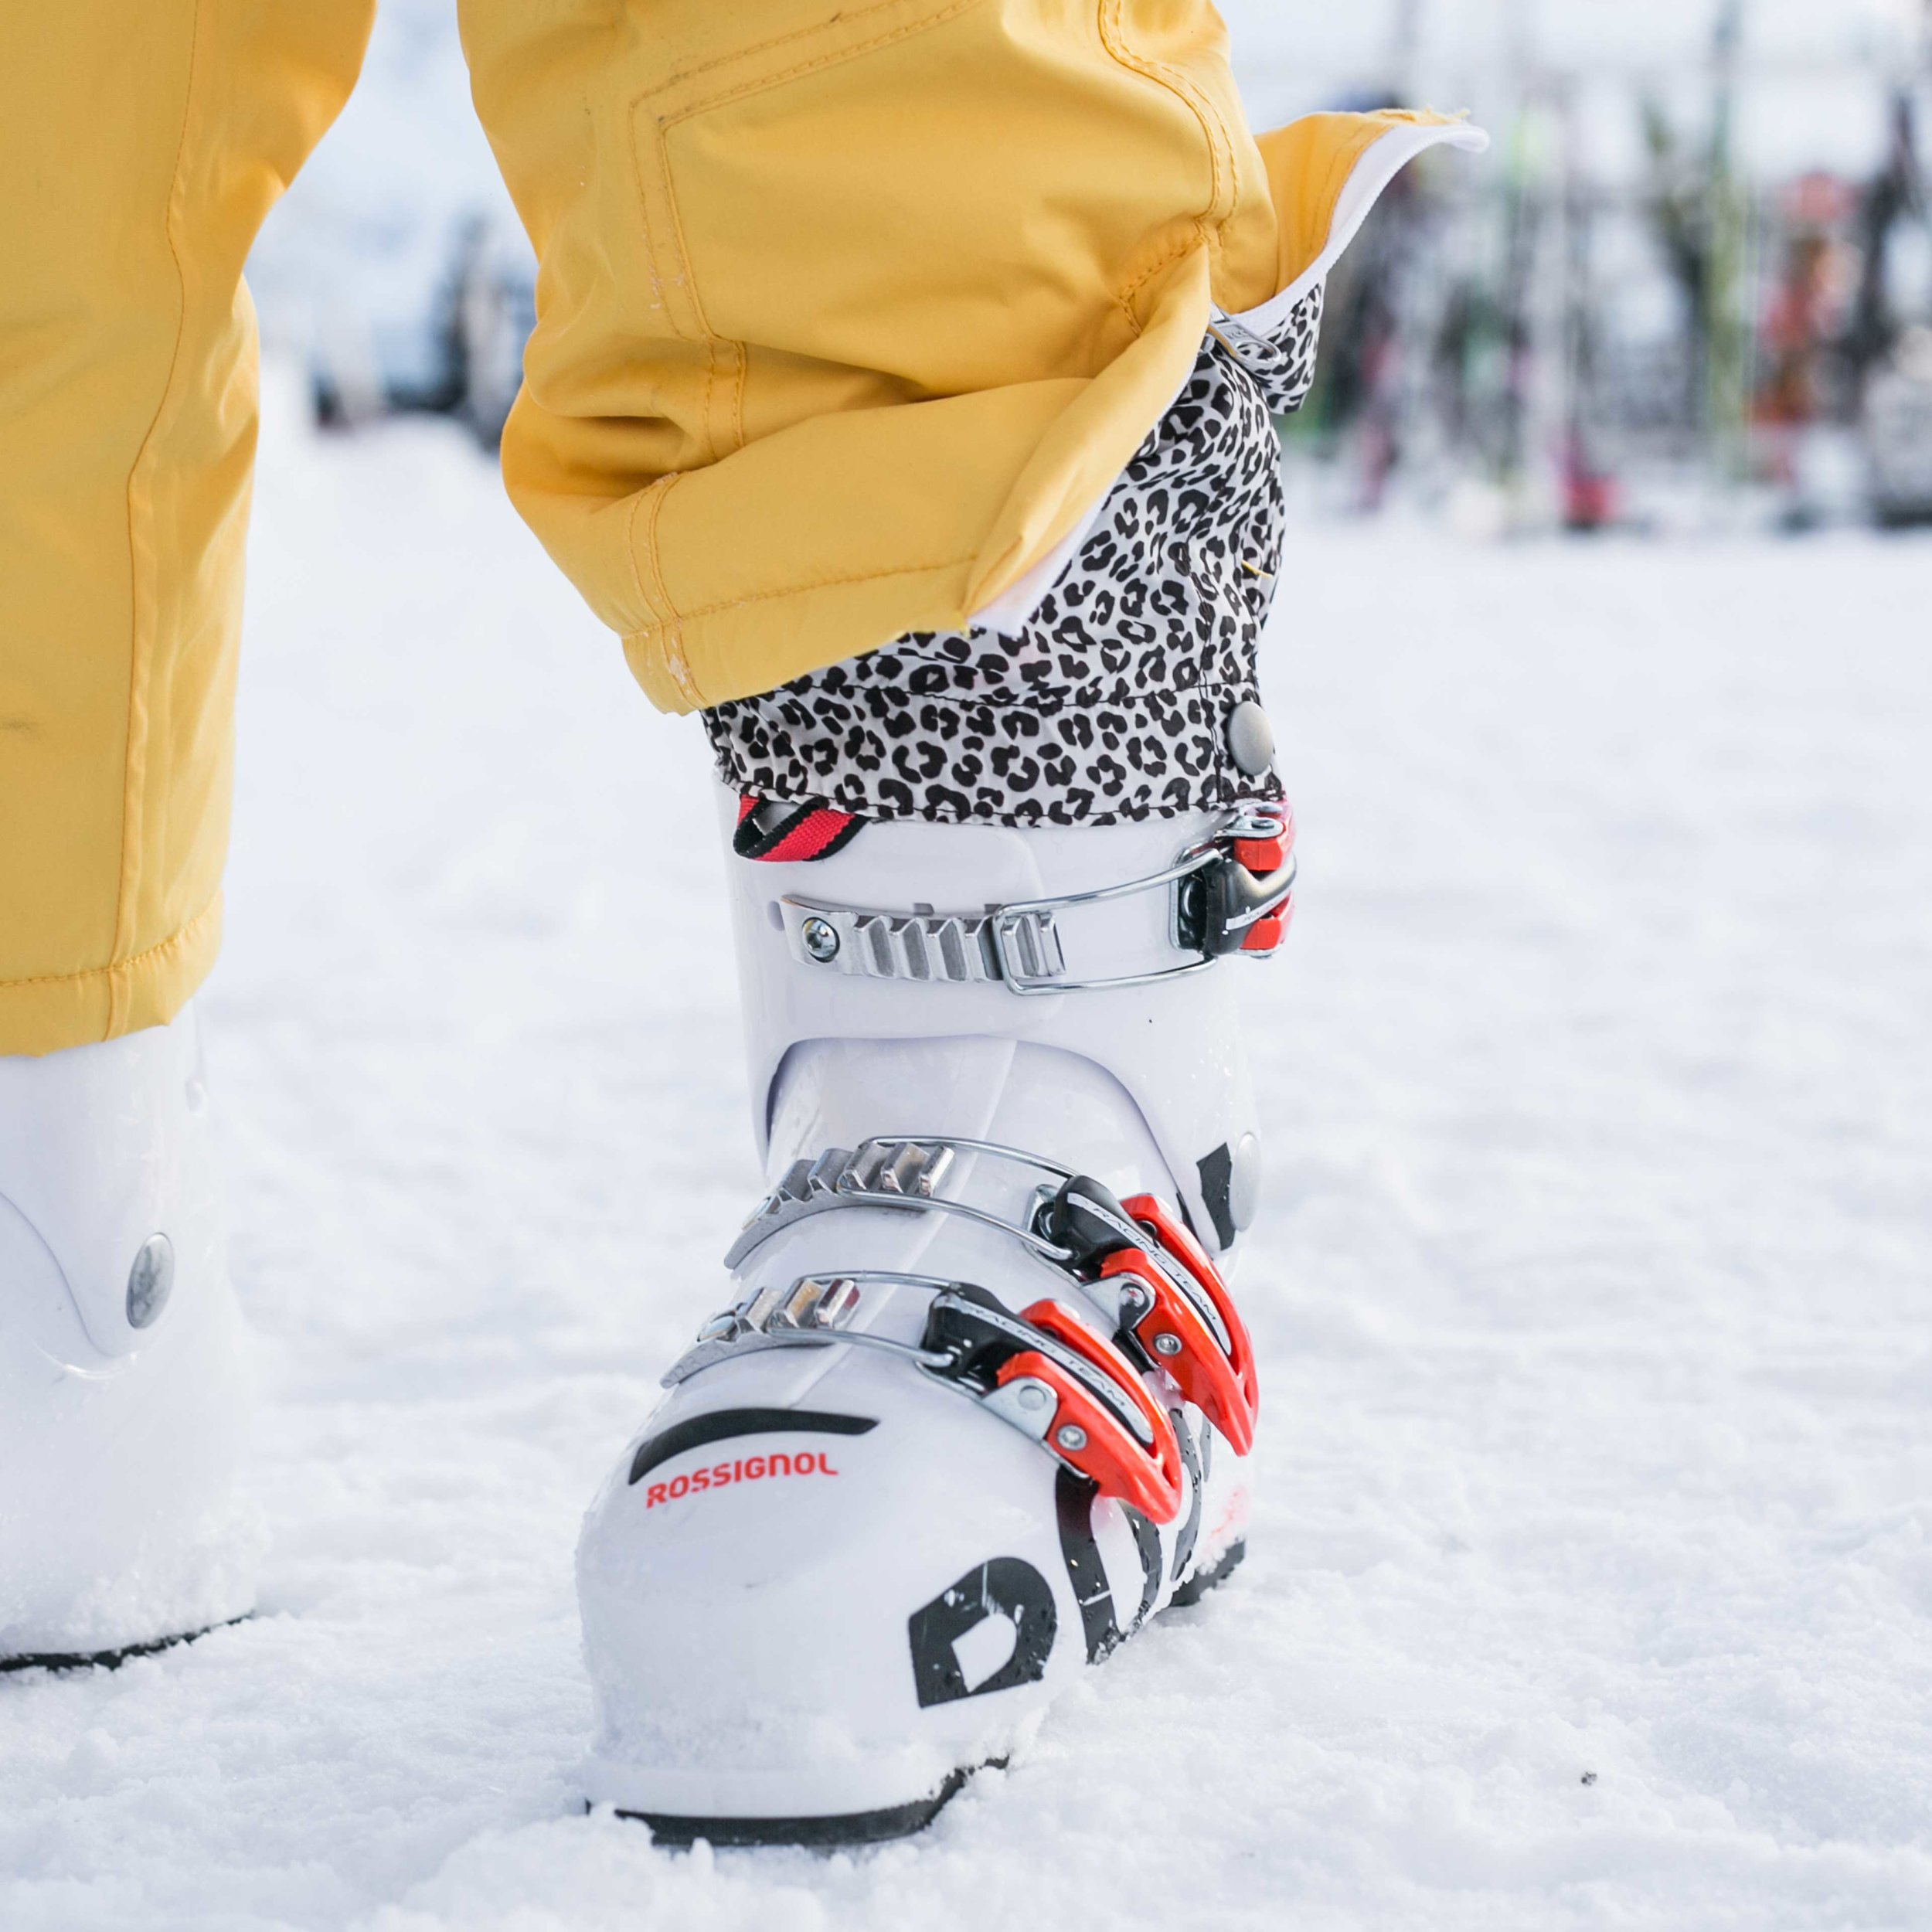 Ski Suit Elasticated Boot Covers